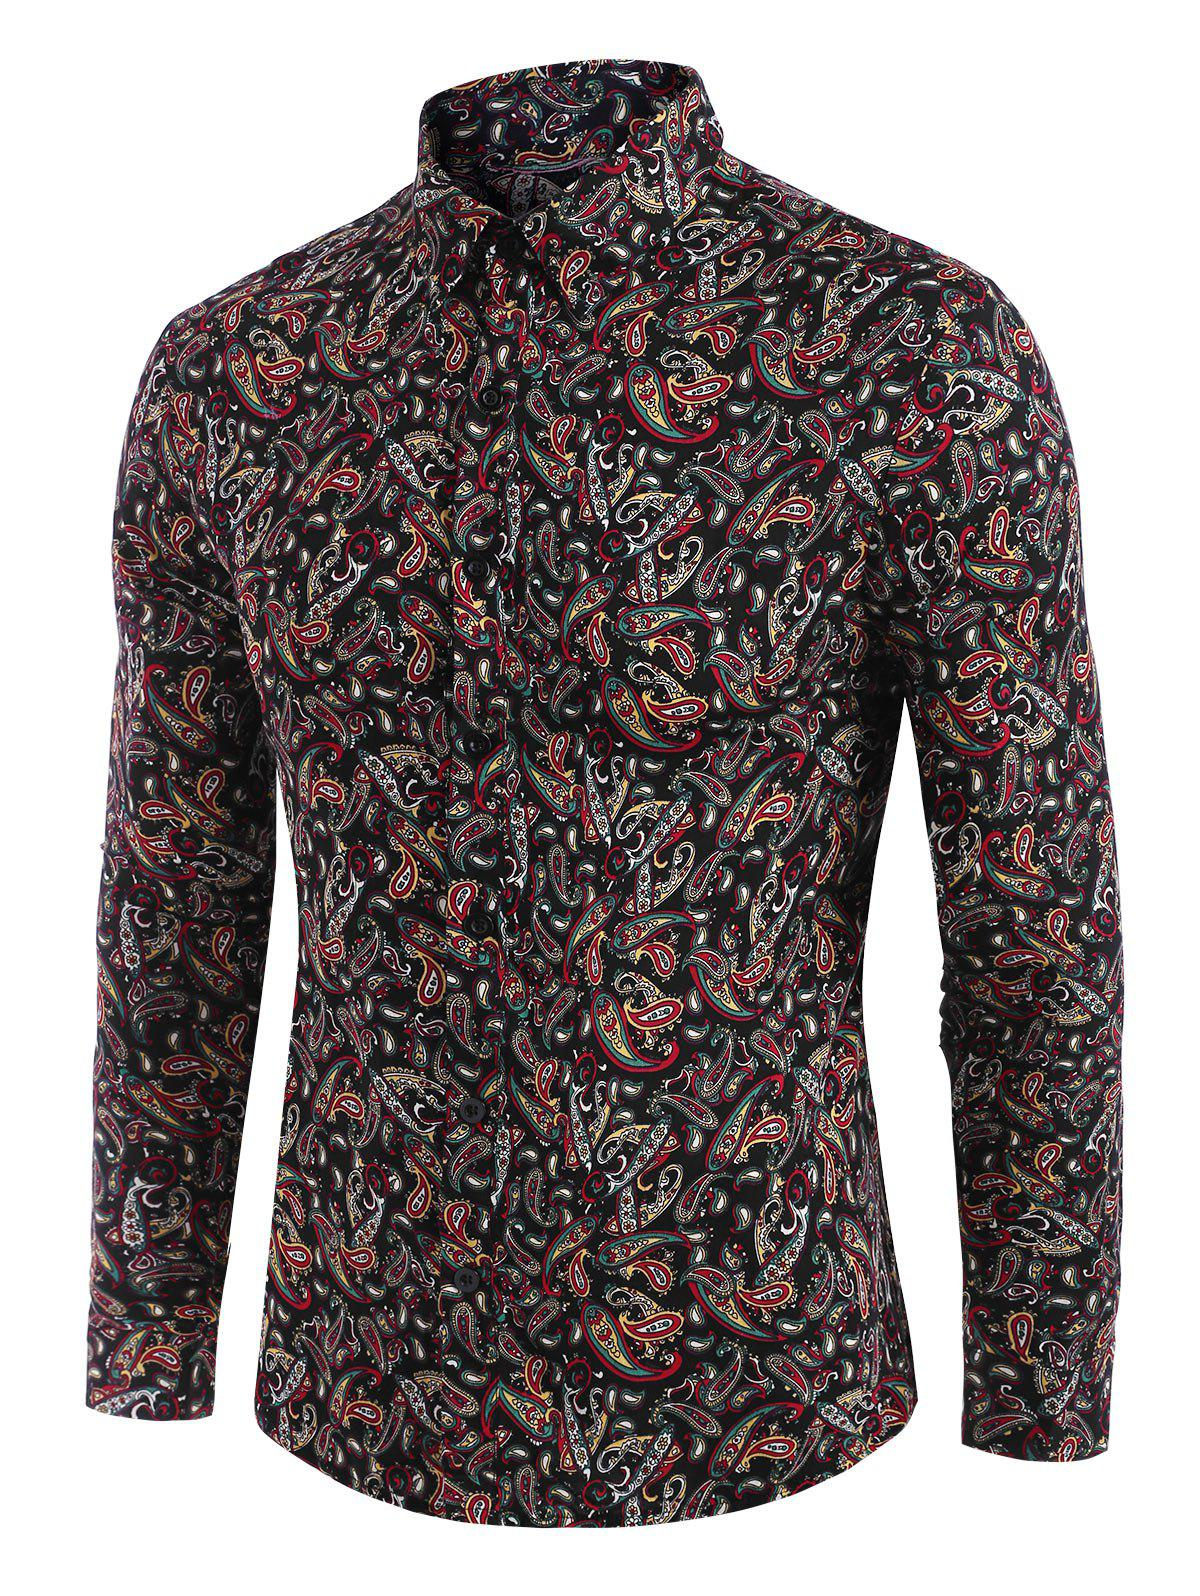 Paisley Allover Print Button Down Shirt - BLACK S